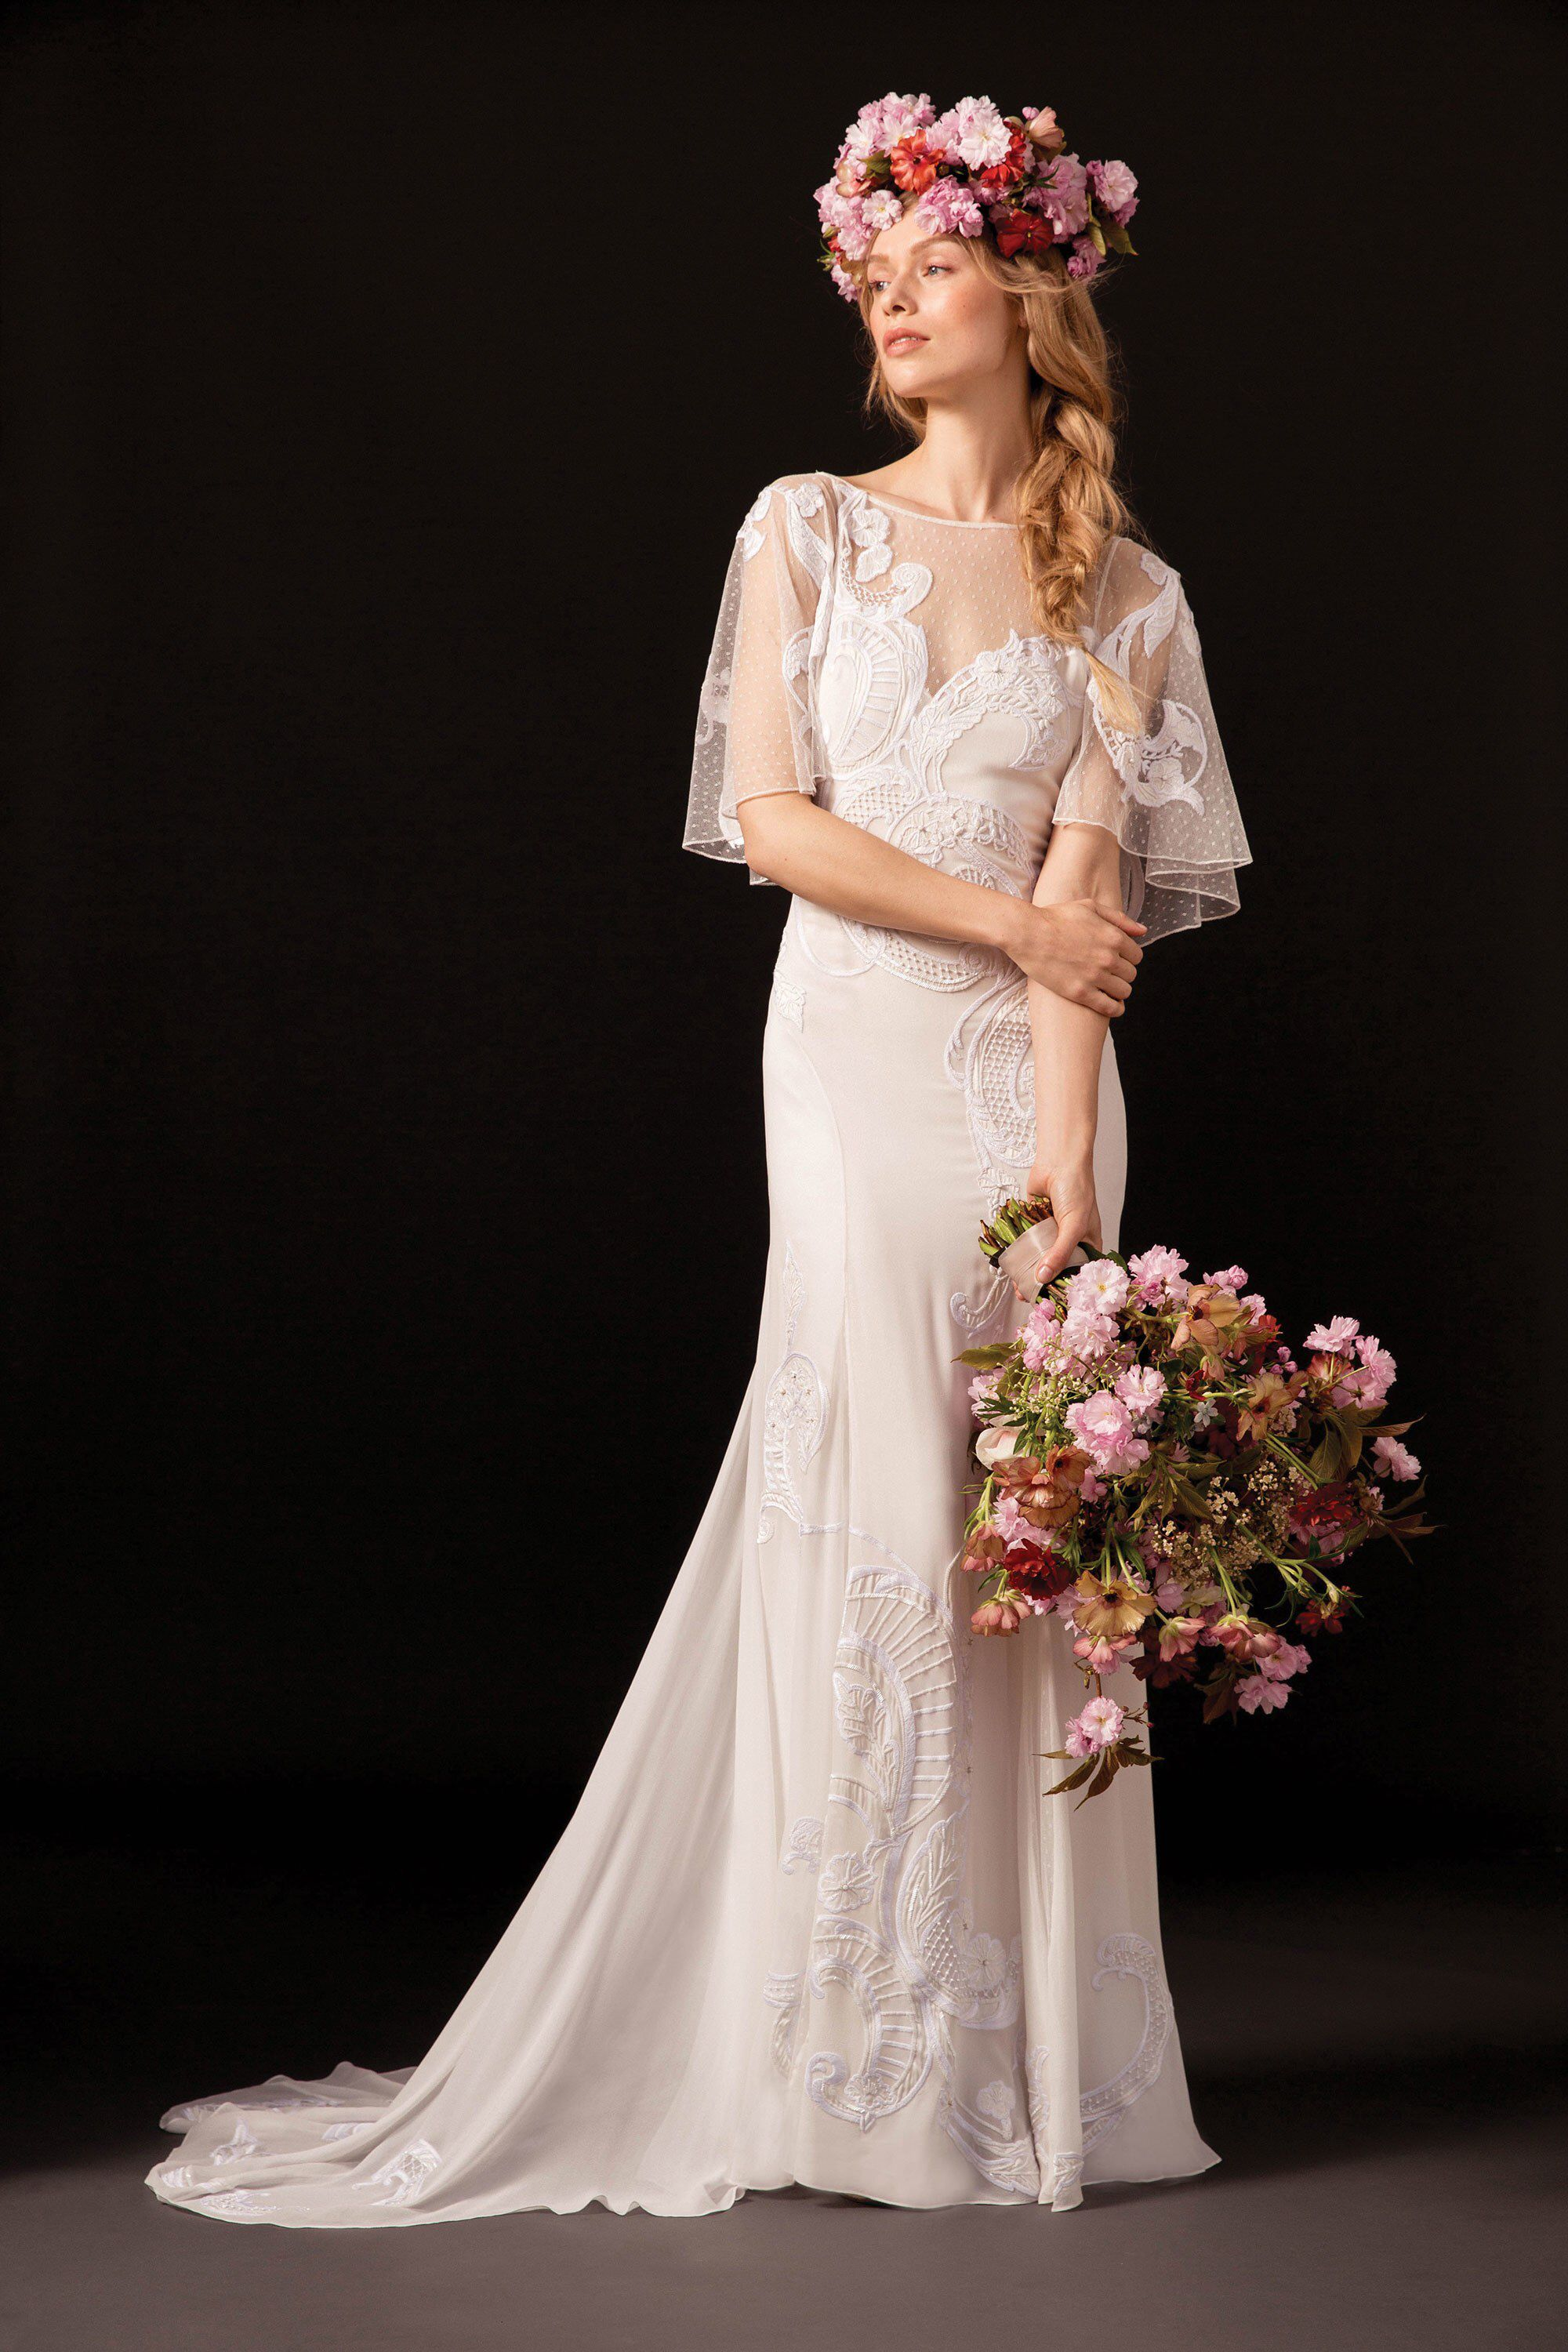 Alice temperley wedding dresses  Temperley London Bridal Spring  Fashion Show  Temperley Gowns